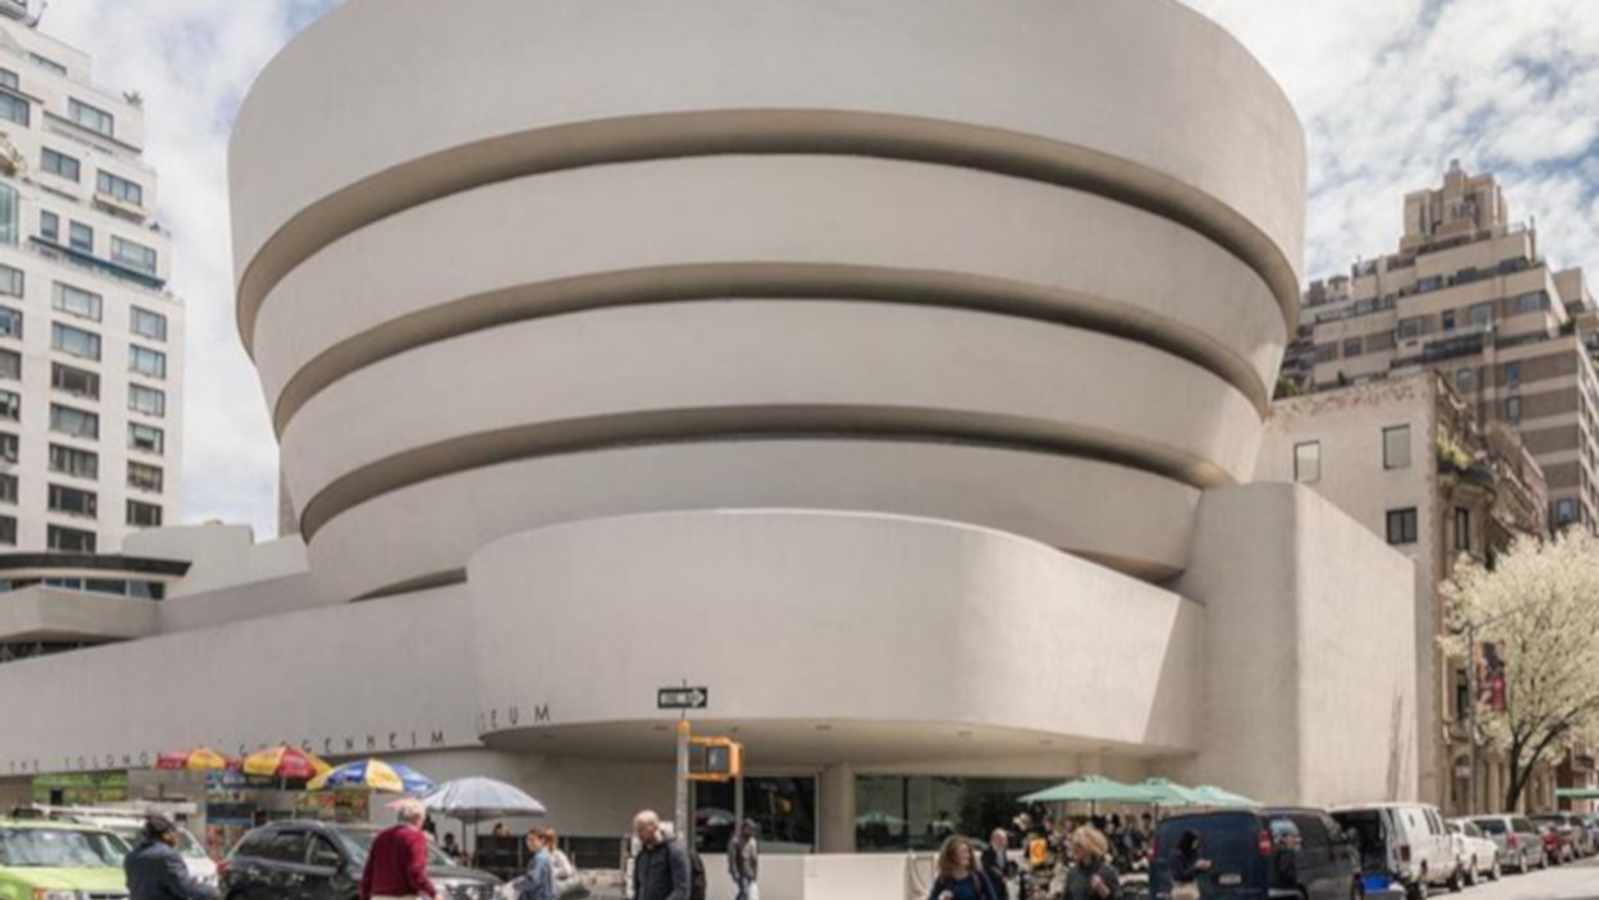 7 Things You Didn't Know About New York City's Guggenheim Museum